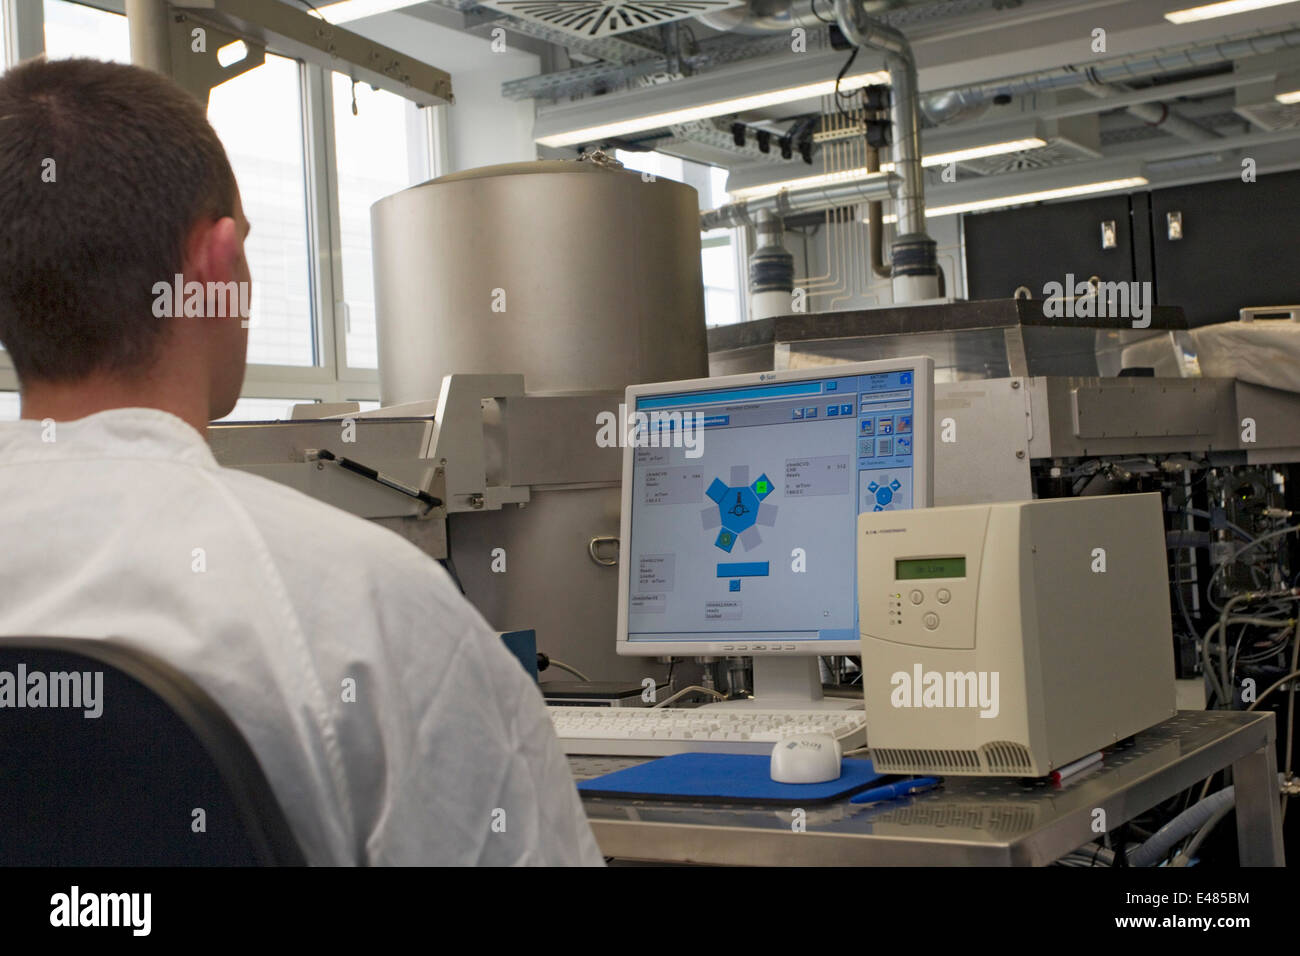 Competence Centre for Photovoltaics - Stock Image